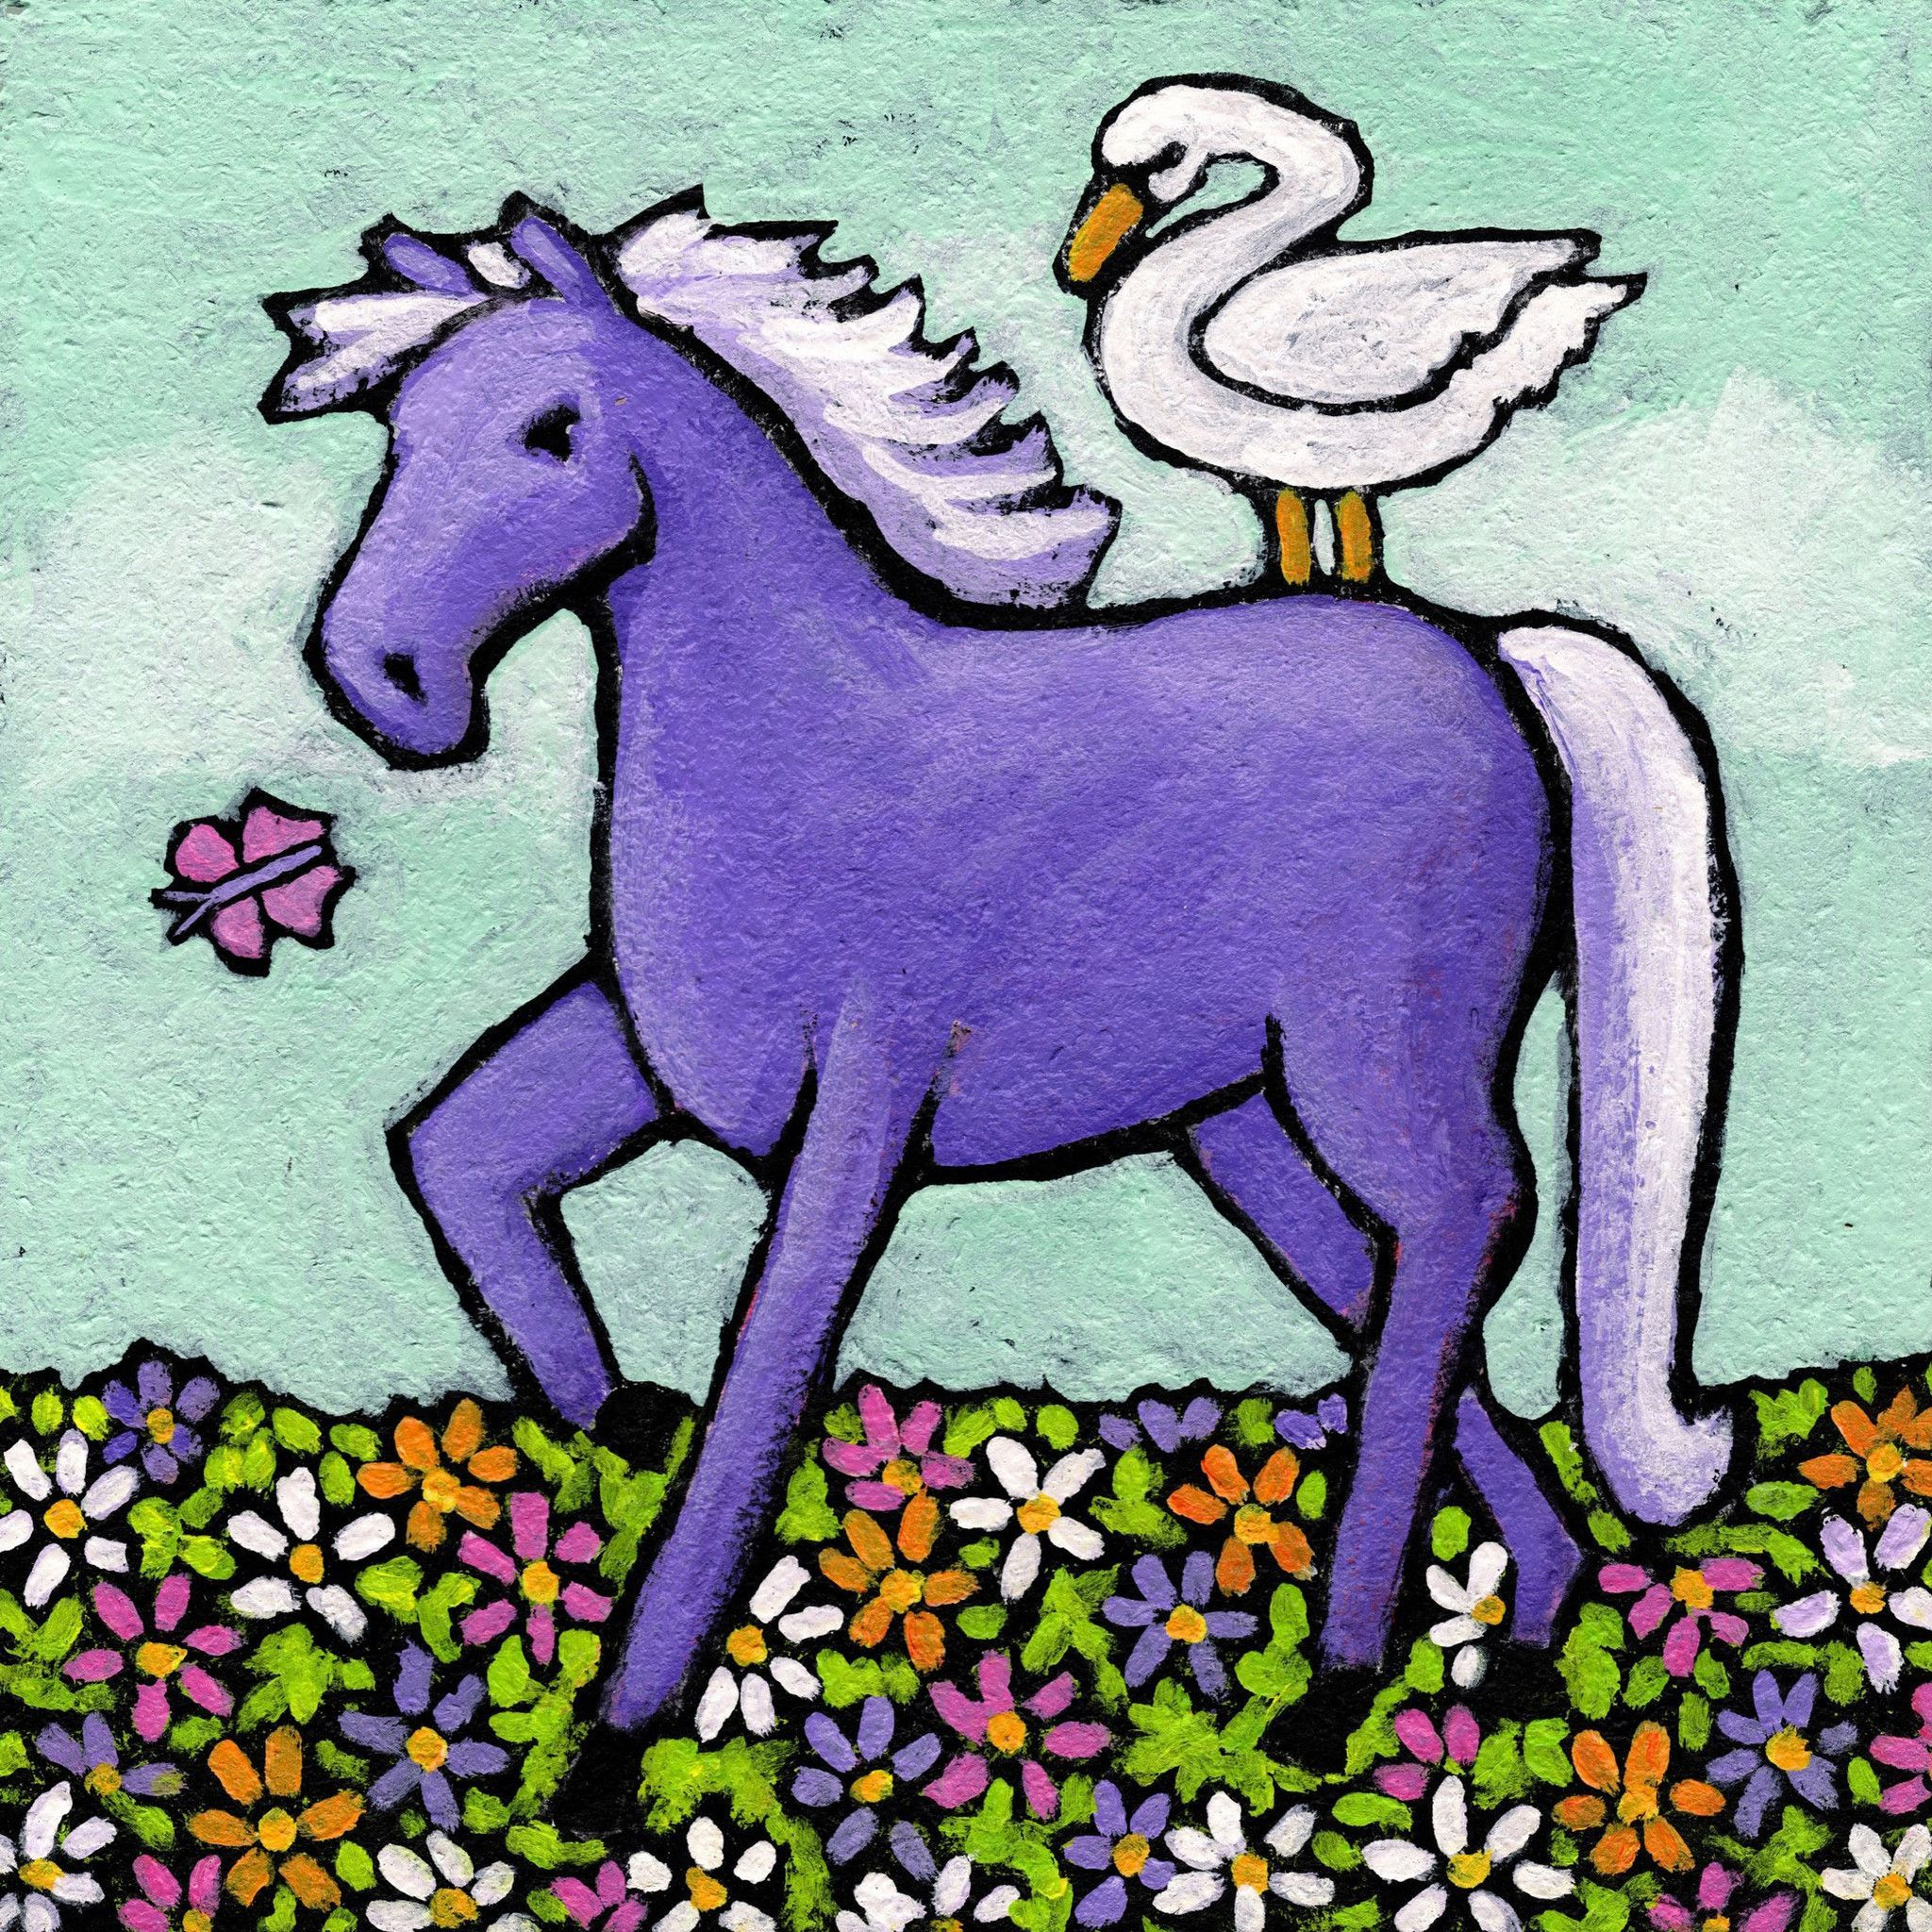 Swan Riding a Horse Swans Canvas artwork and Products